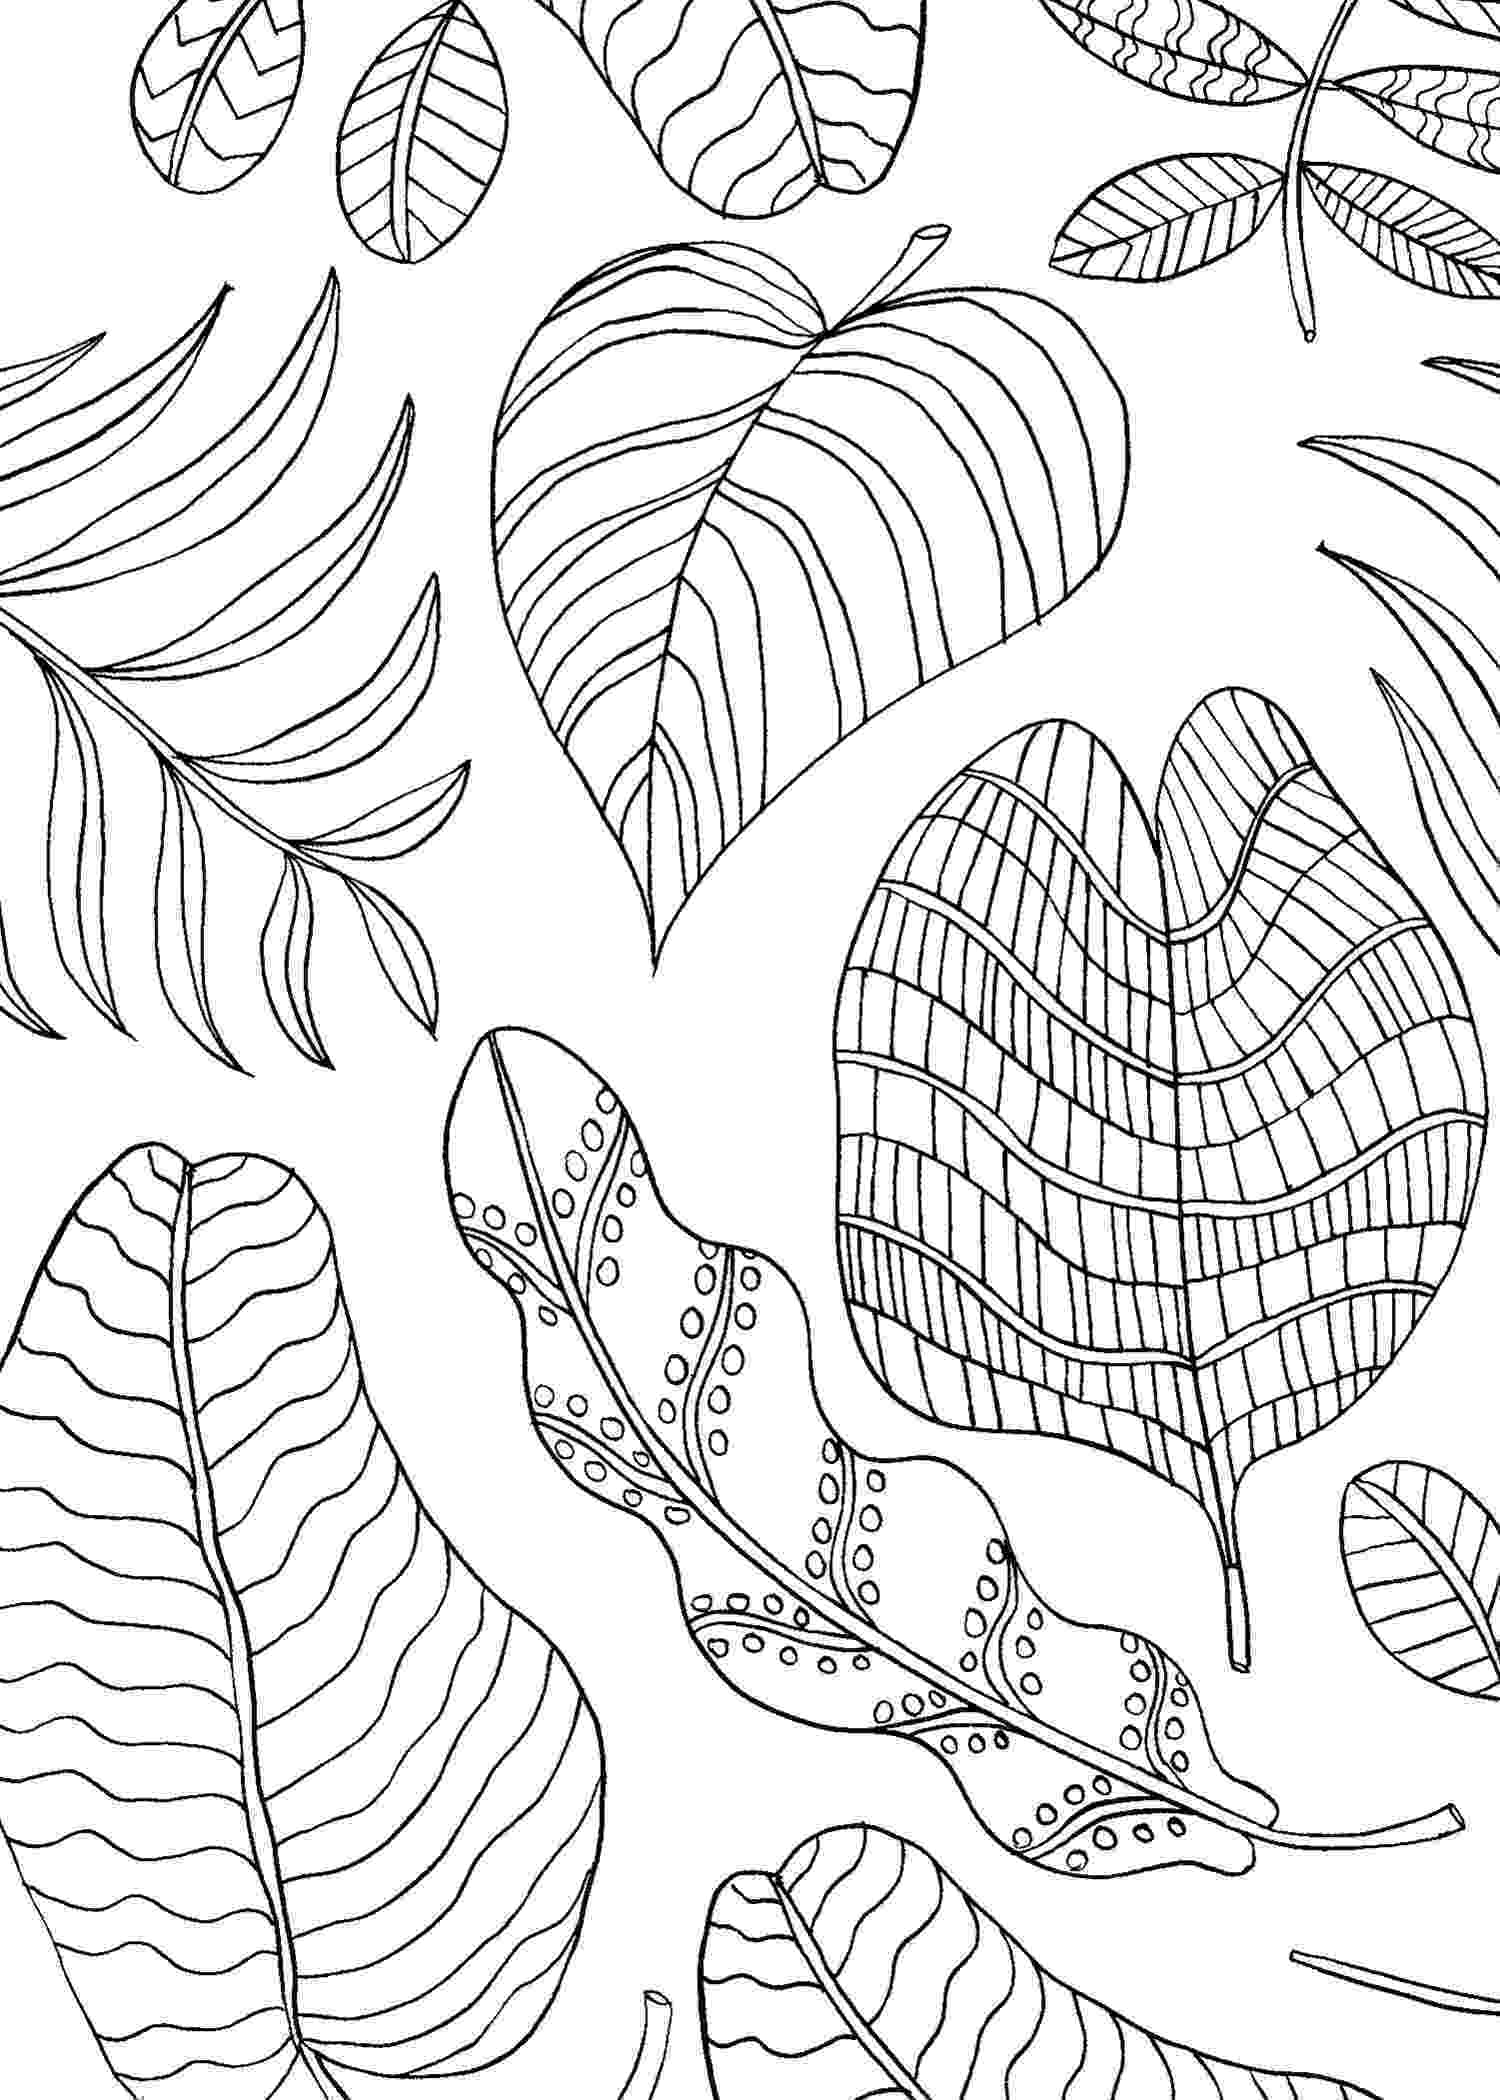 mindfulness colouring pages mindfulness bamboo learners pages mindfulness colouring